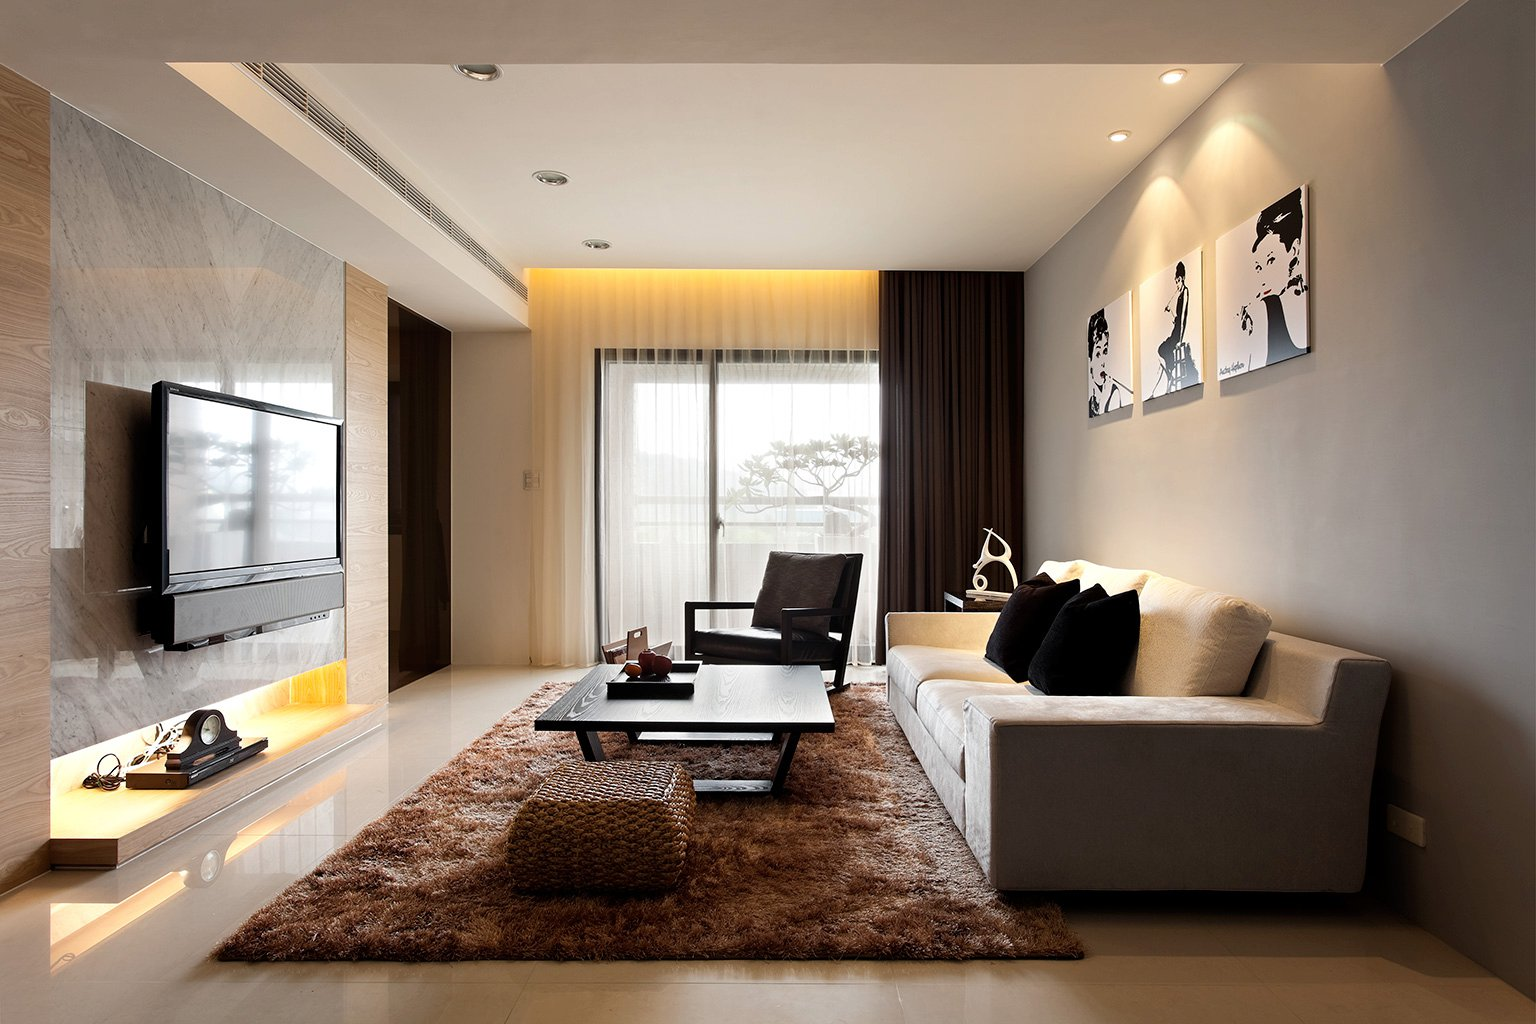 Incredible Modern Living Room Decorations 1536 x 1024 · 238 kB · jpeg